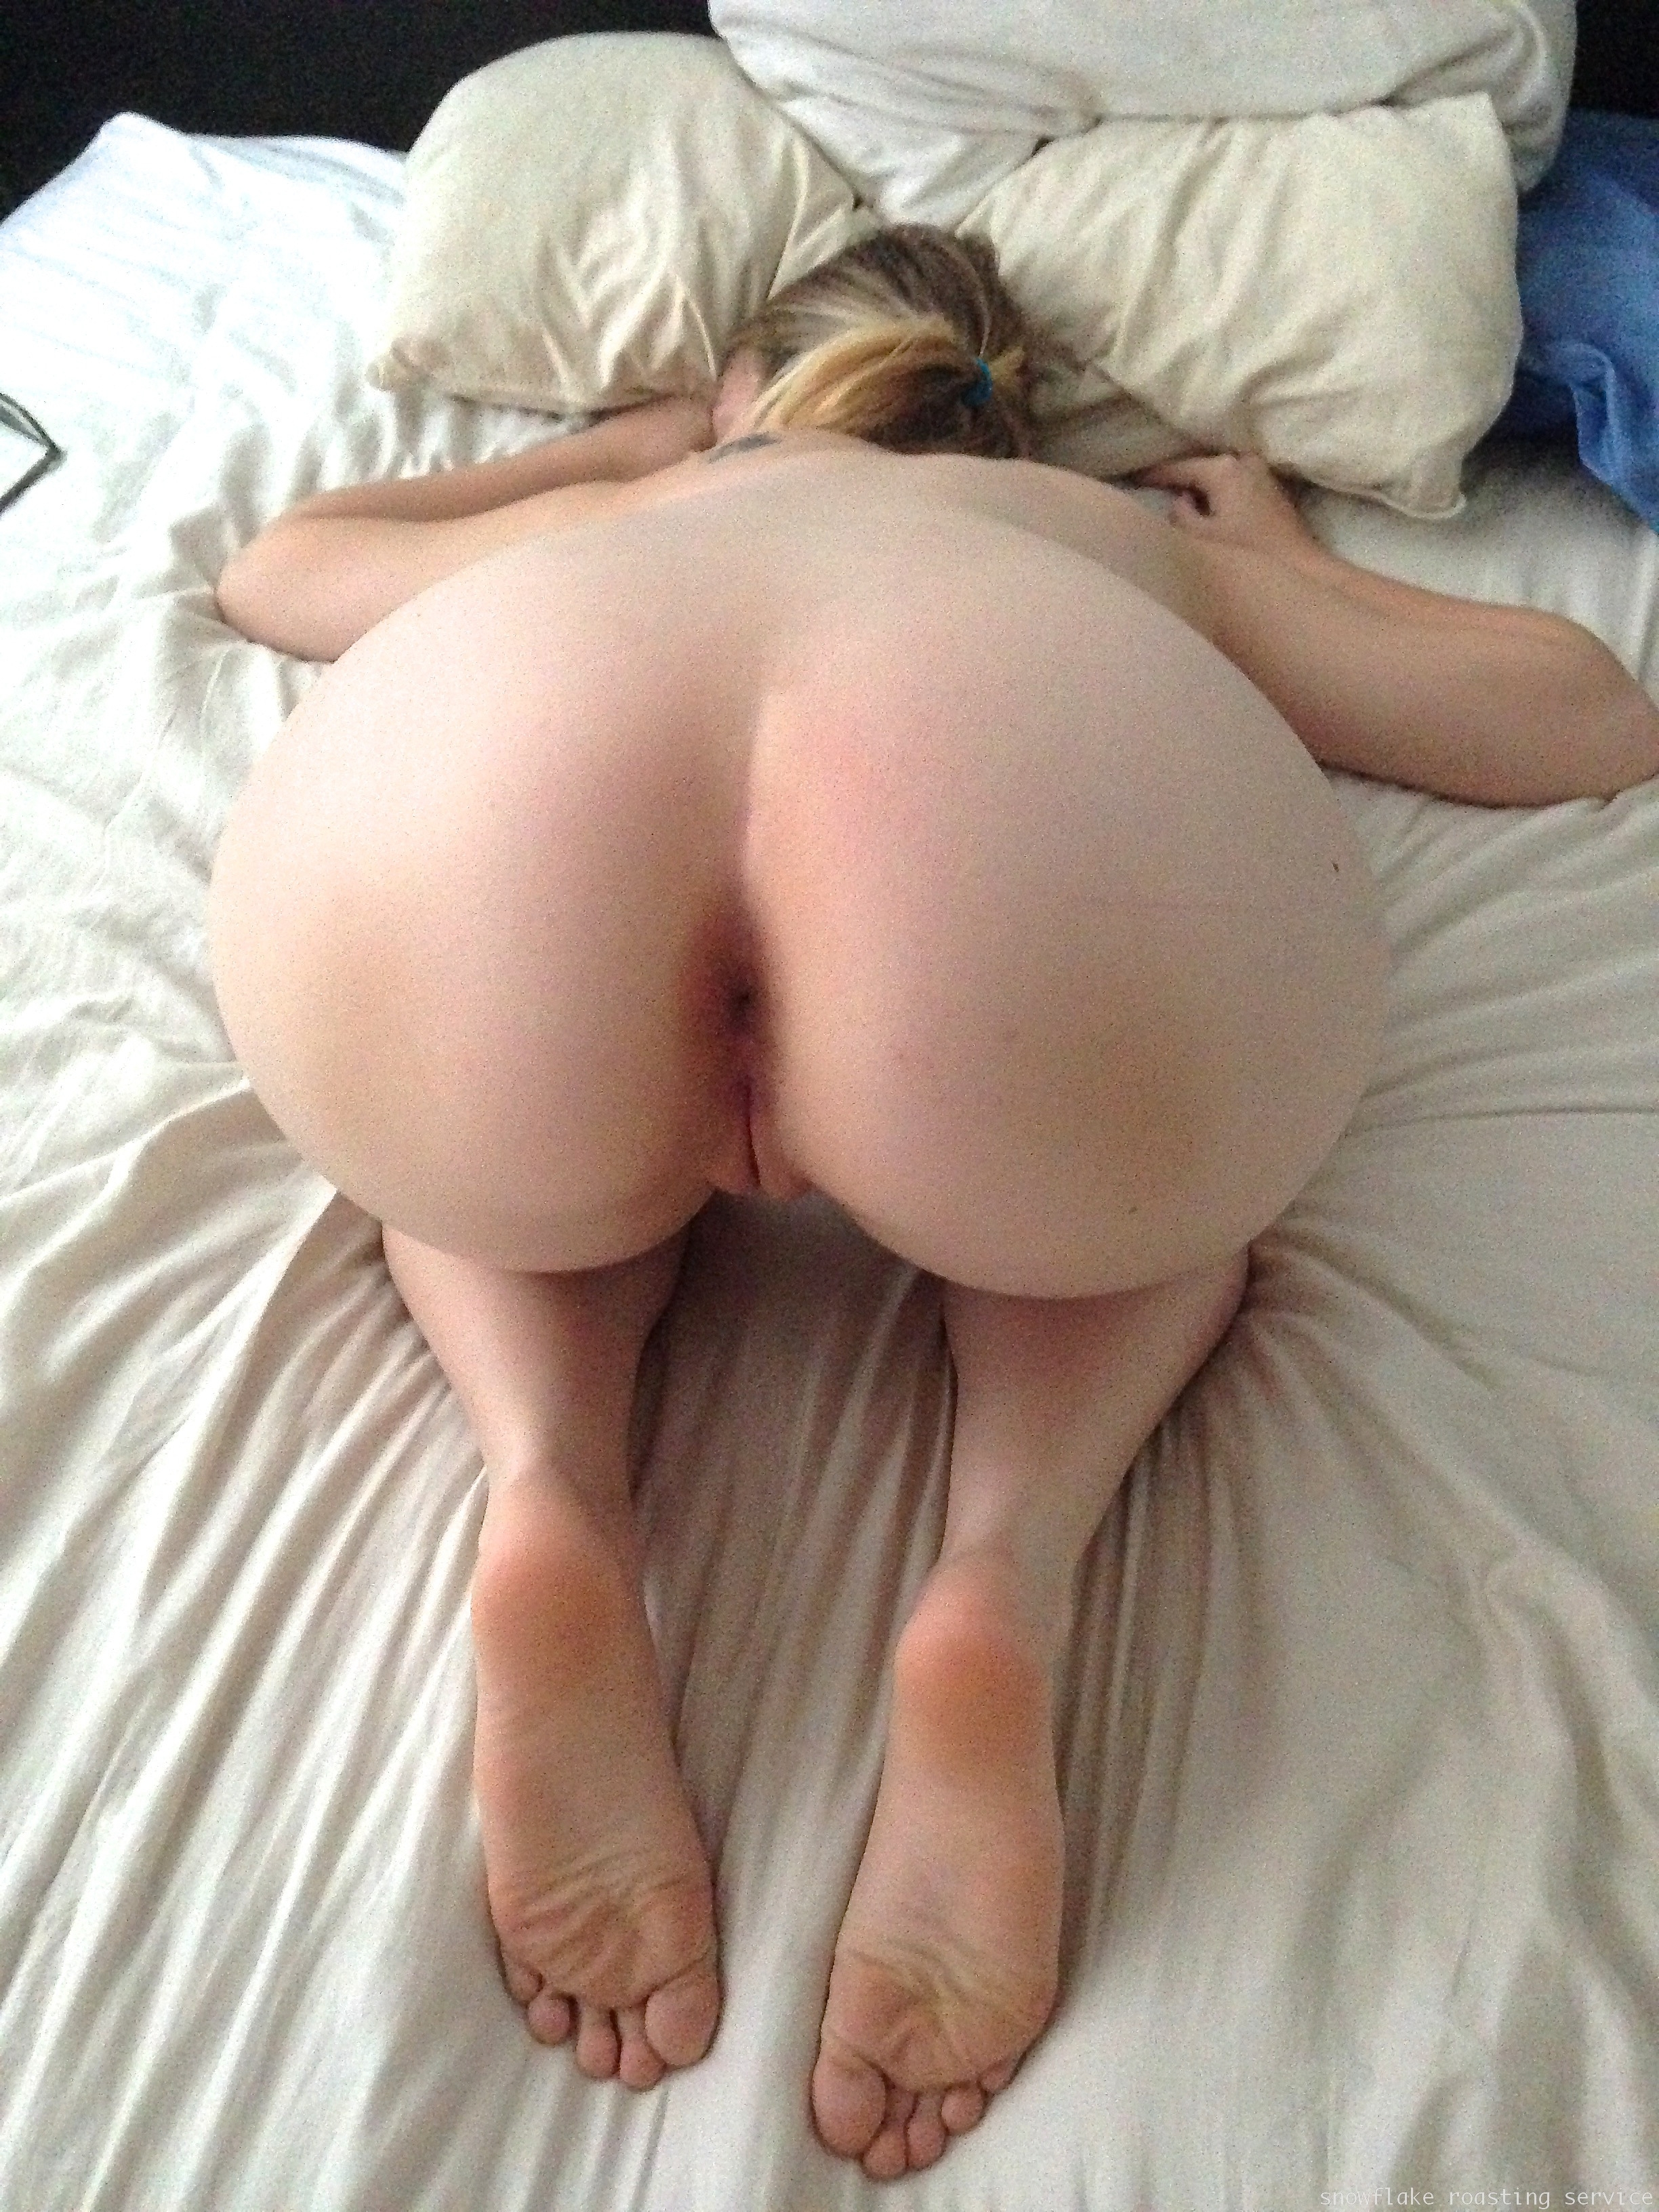 face down ass up anal